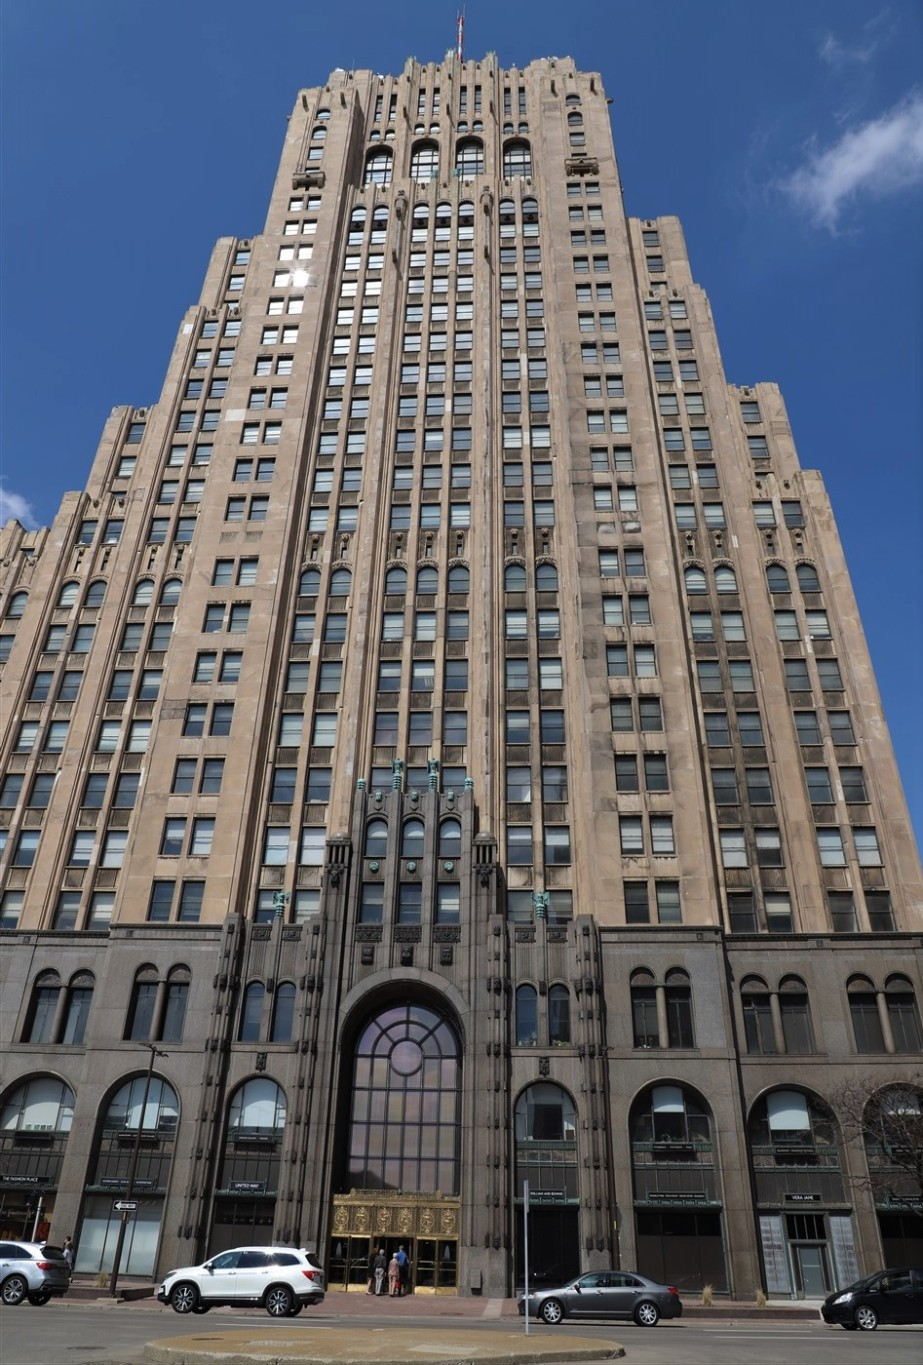 2019 04 06 141 Detroit Fisher Building.jpg